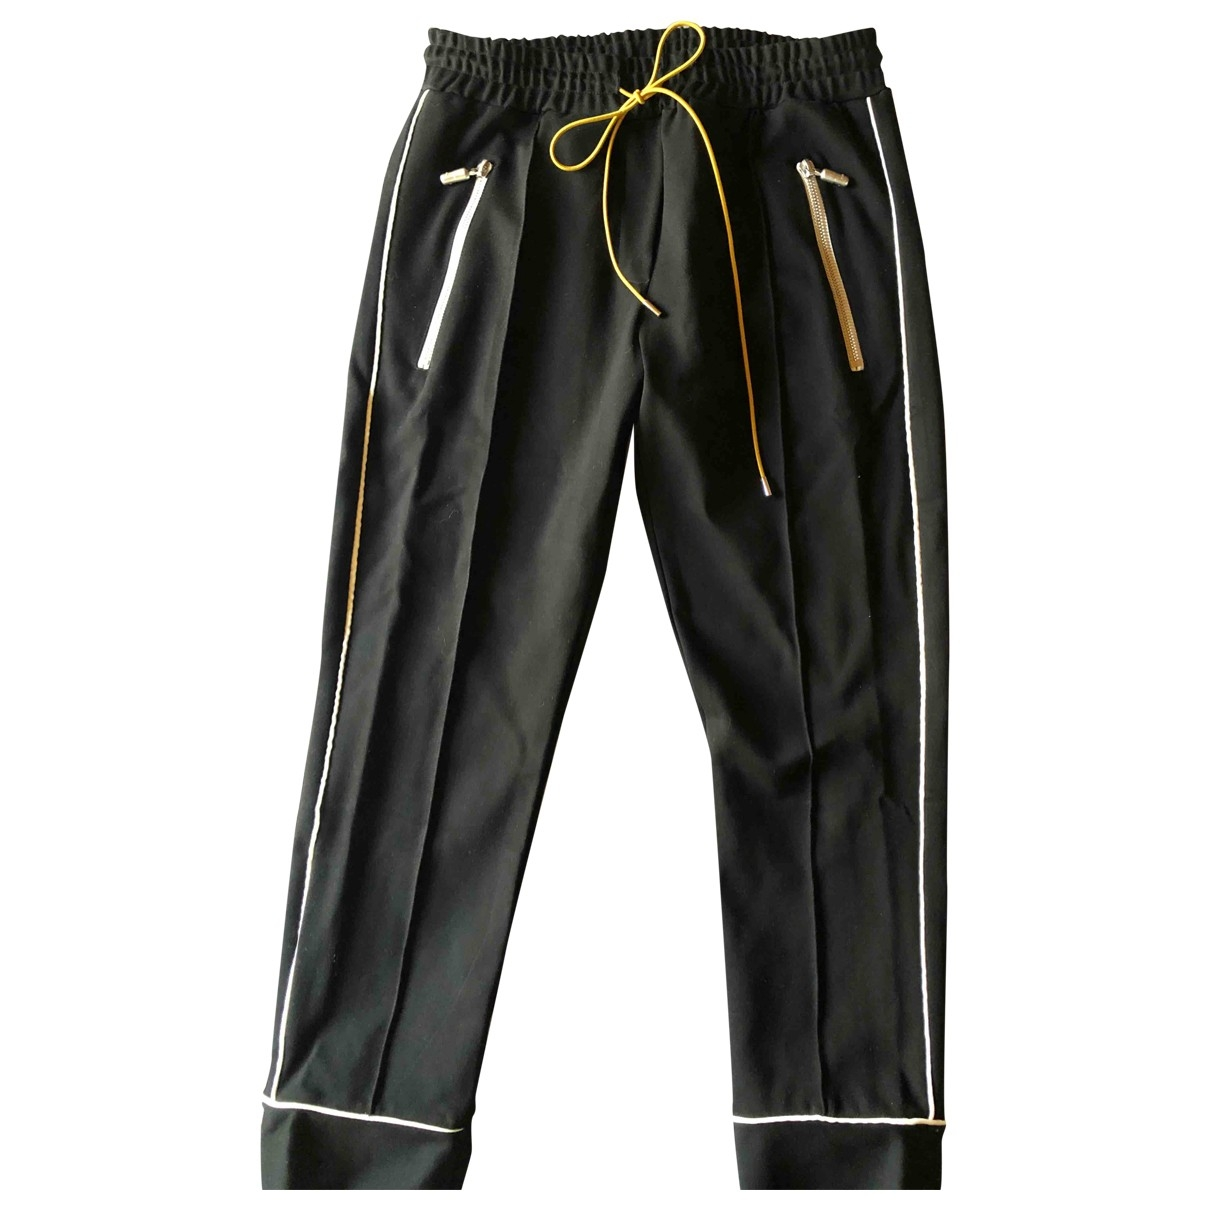 Rhude \N Black Trousers for Men M International